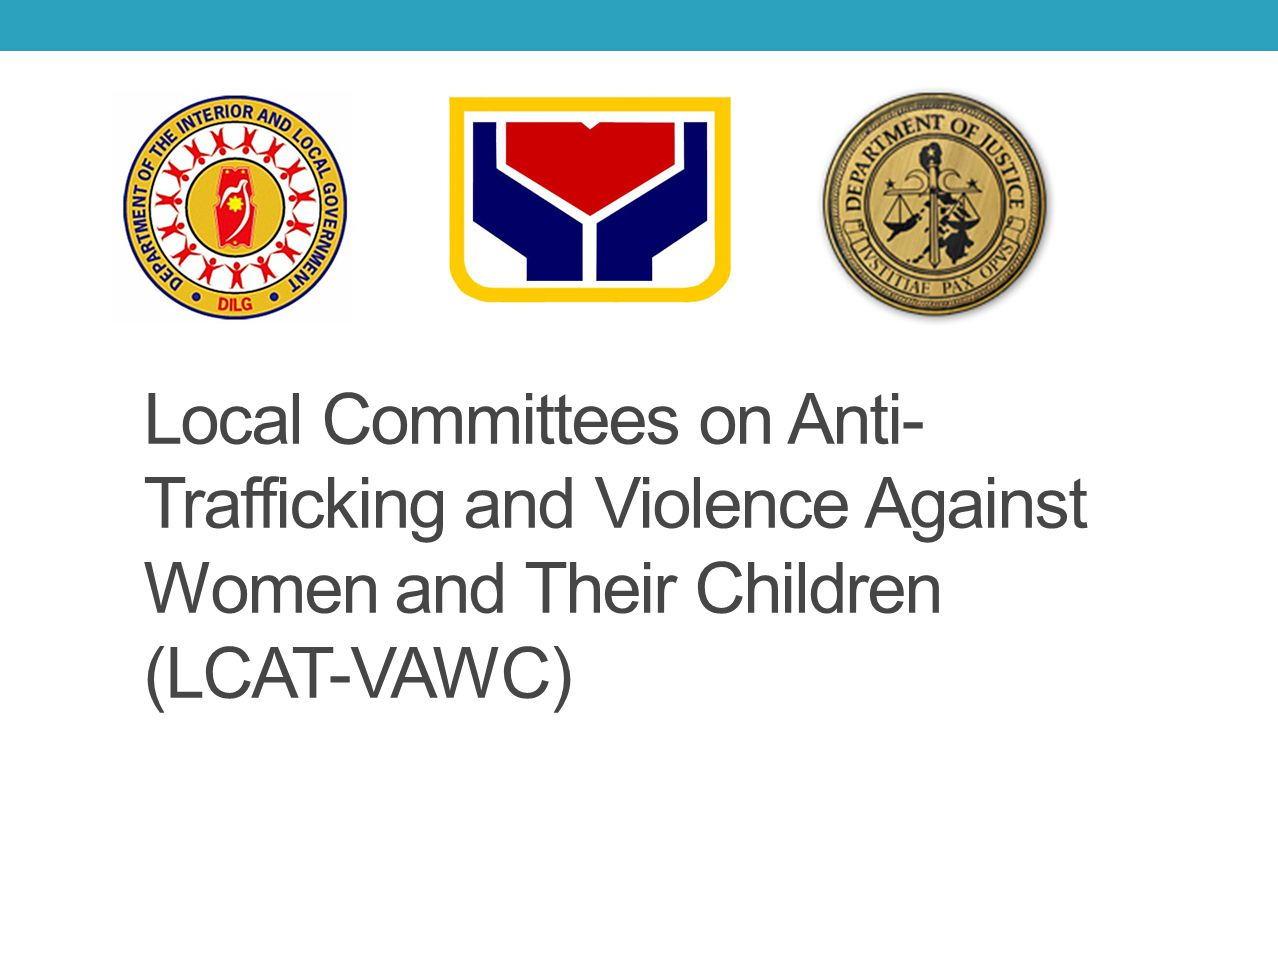 Local Committees on Anti-Trafficking and Violence Against Women and Their Children (LCAT-VAWC)